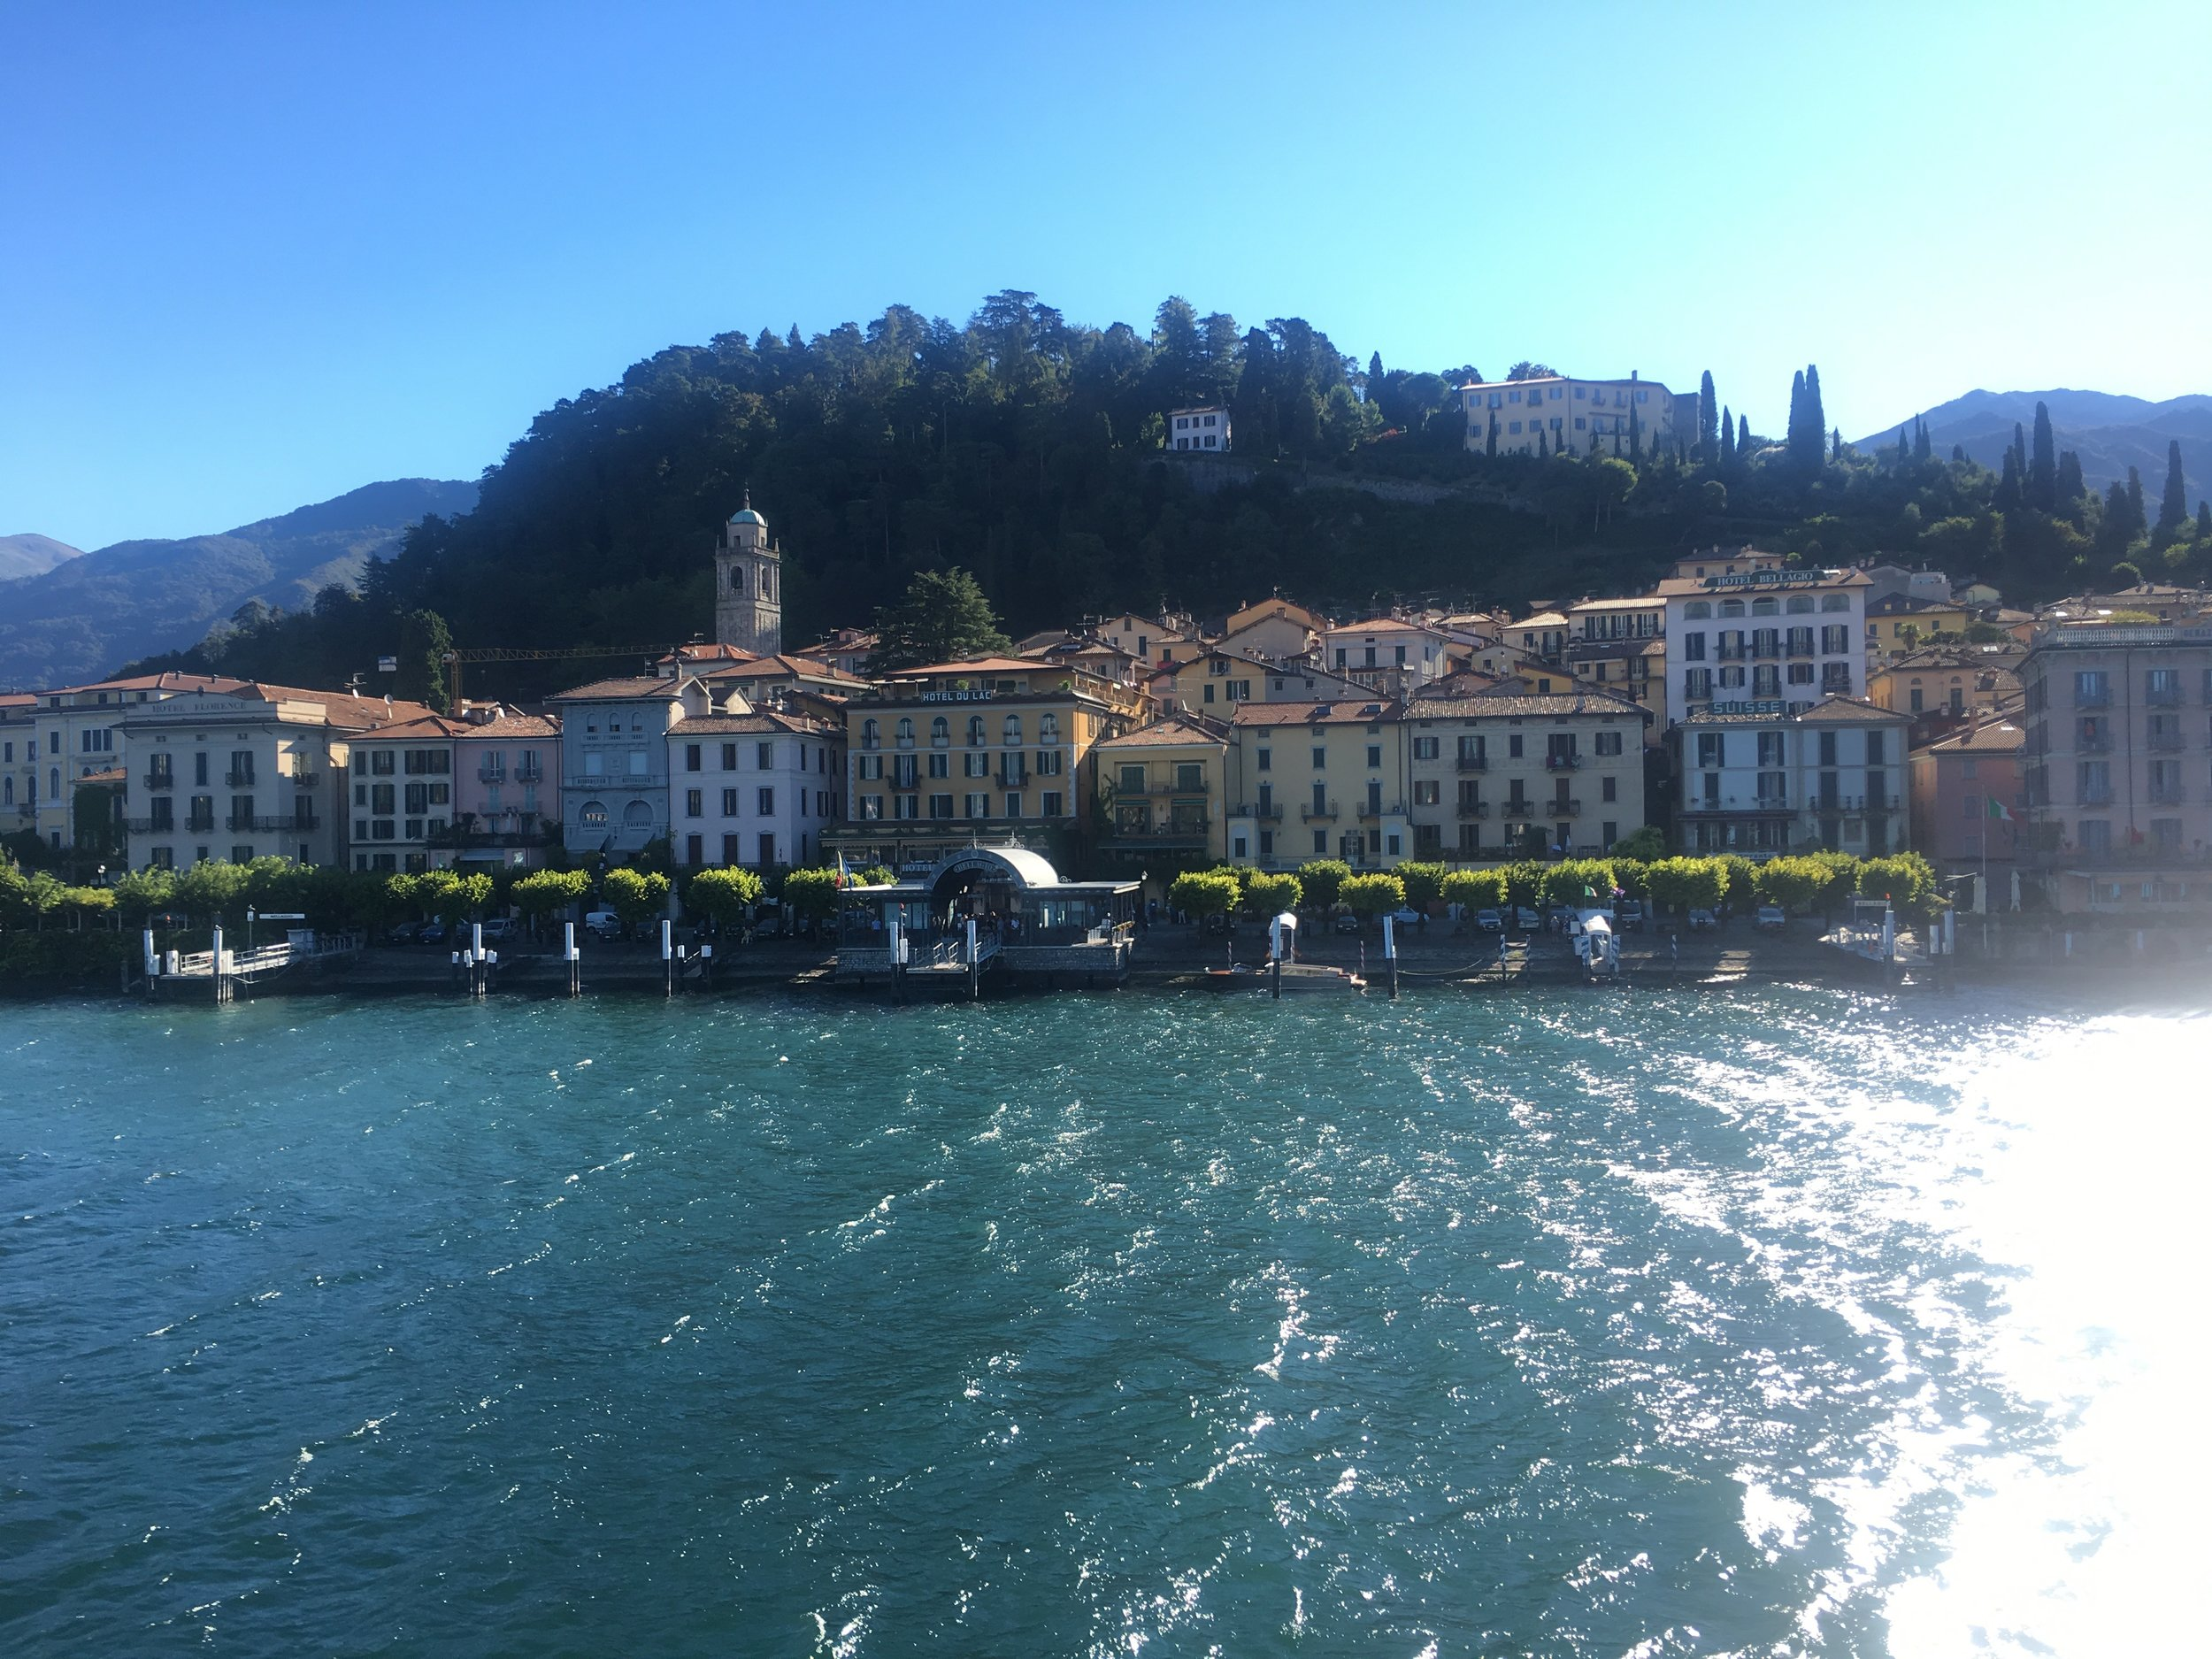 A view of Bellagio from the ferry.